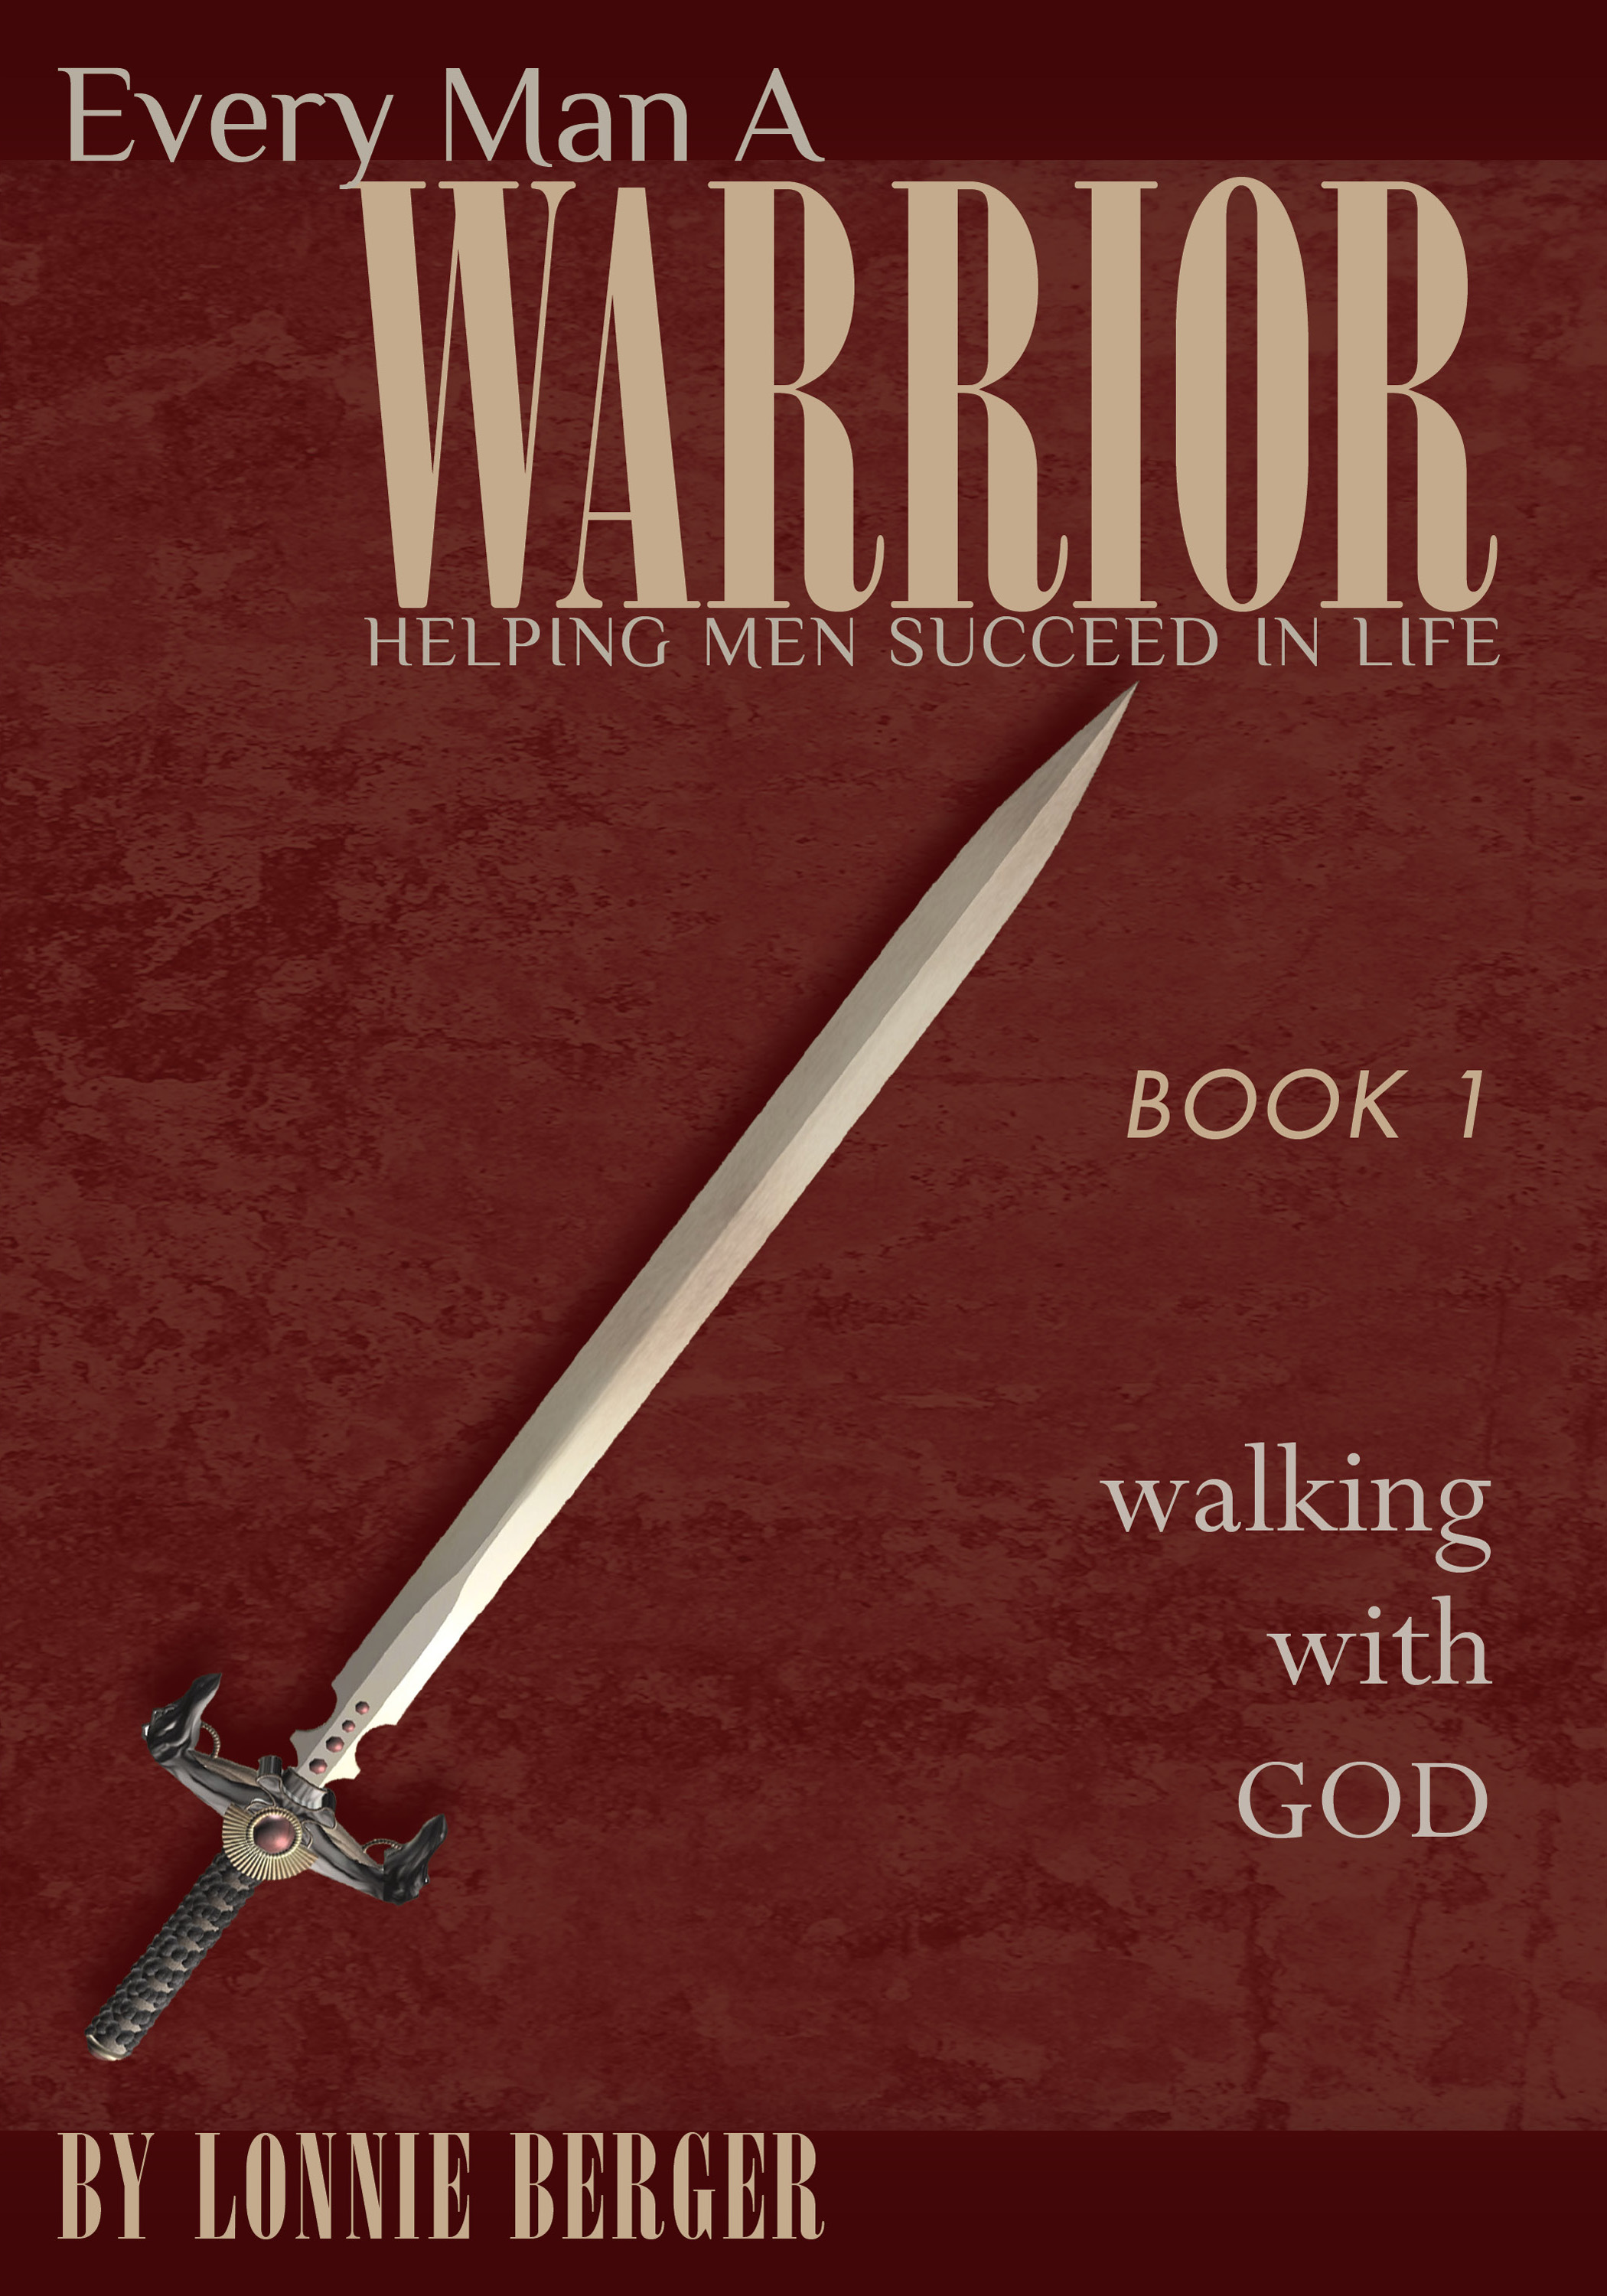 Book One Kit: Walking With God with Verse Pack